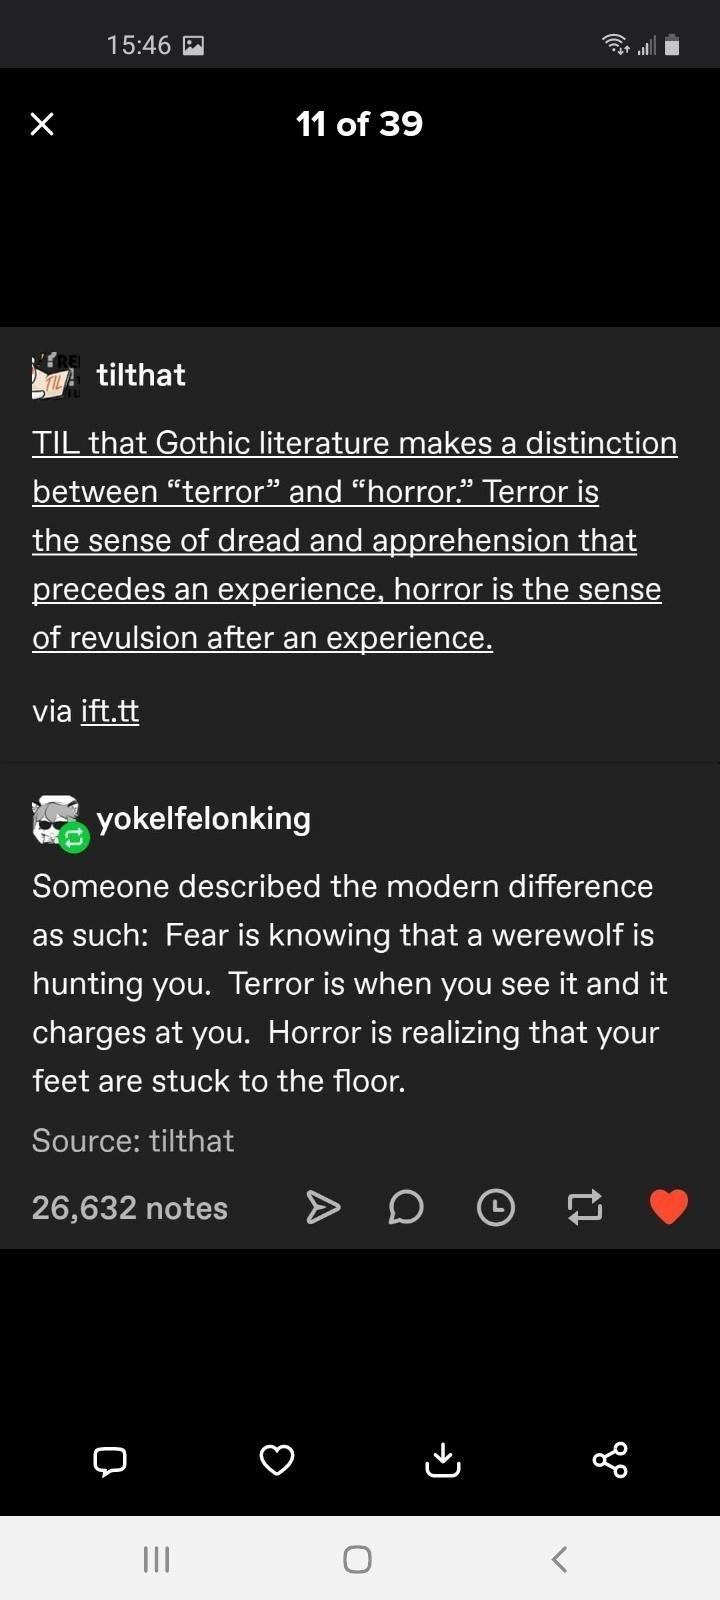 """Font - 15:46 M 11 of 39 tilthat TIL that Gothic literature makes a distinction between """"terror"""" and """"horror."""" Terror is the sense of dread and apprehension that precedes an experience, horror is the sense of revulsion after an experience. via ift.tt yokelfelonking Someone described the modern difference as such: Fear is knowing that a werewolf is hunting you. Terror is when you see it and it charges at you. Horror is realizing that your feet are stuck to the floor. Source: tilthat 26,632 notes I"""